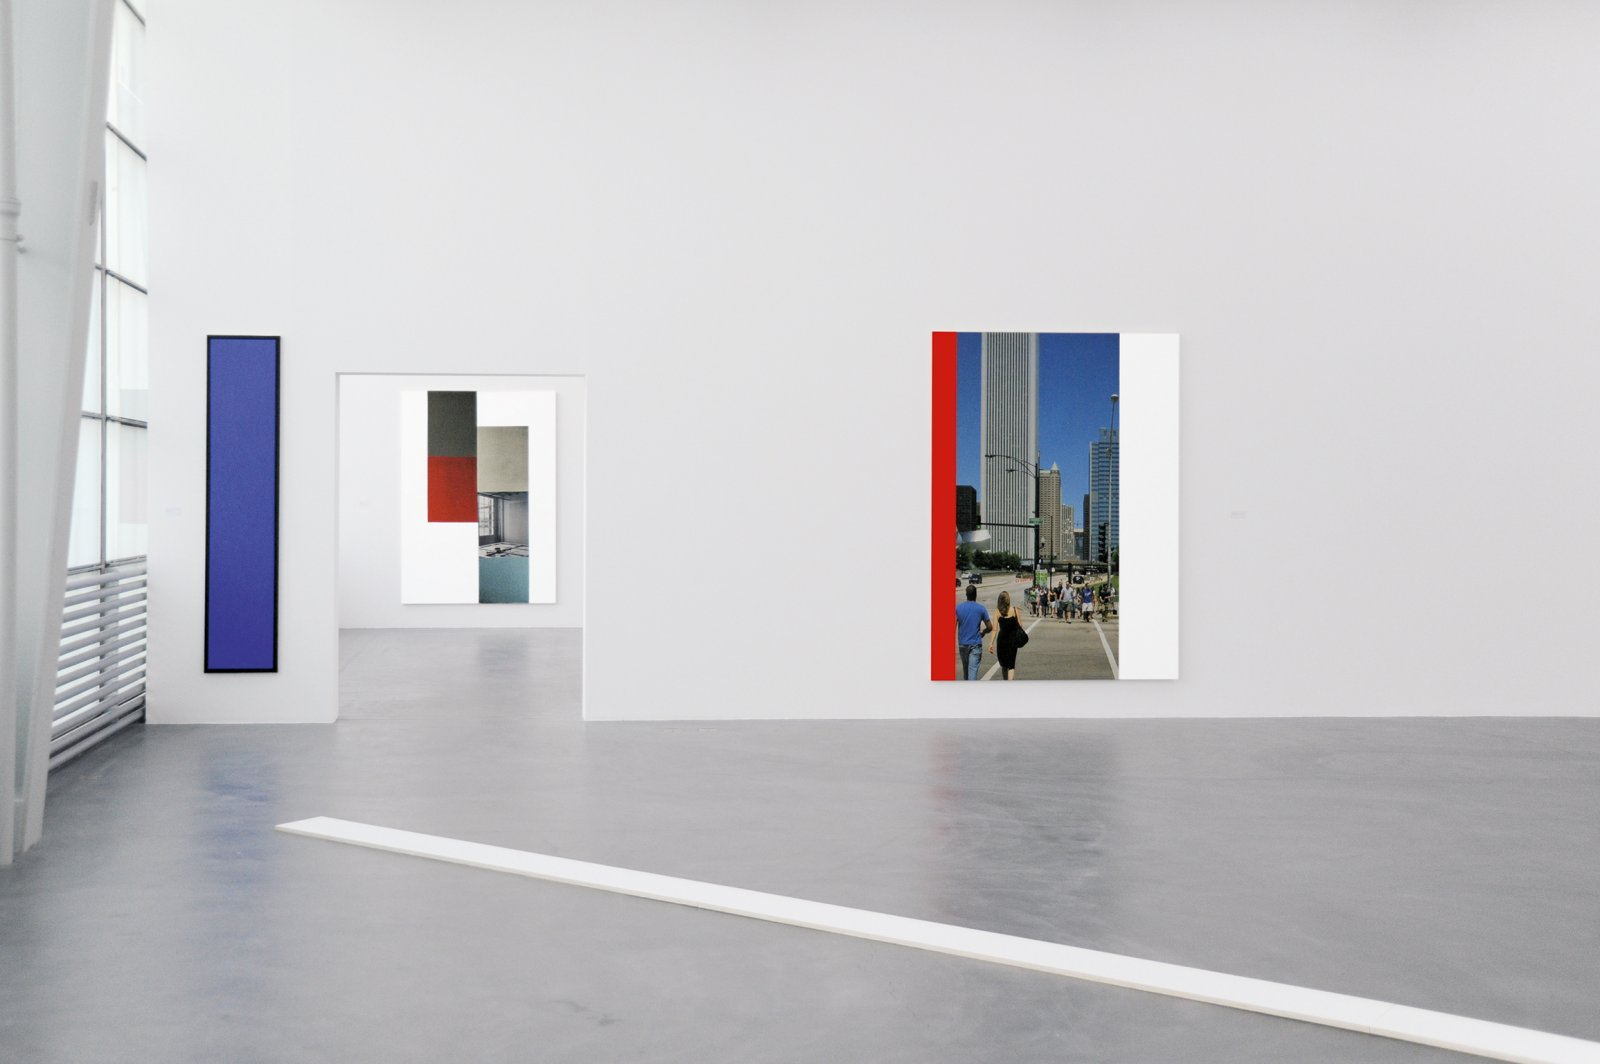 Ian Wallace, installation view, A Literature of Images, Kunsthalle Zürich, 2008 by Ian Wallace